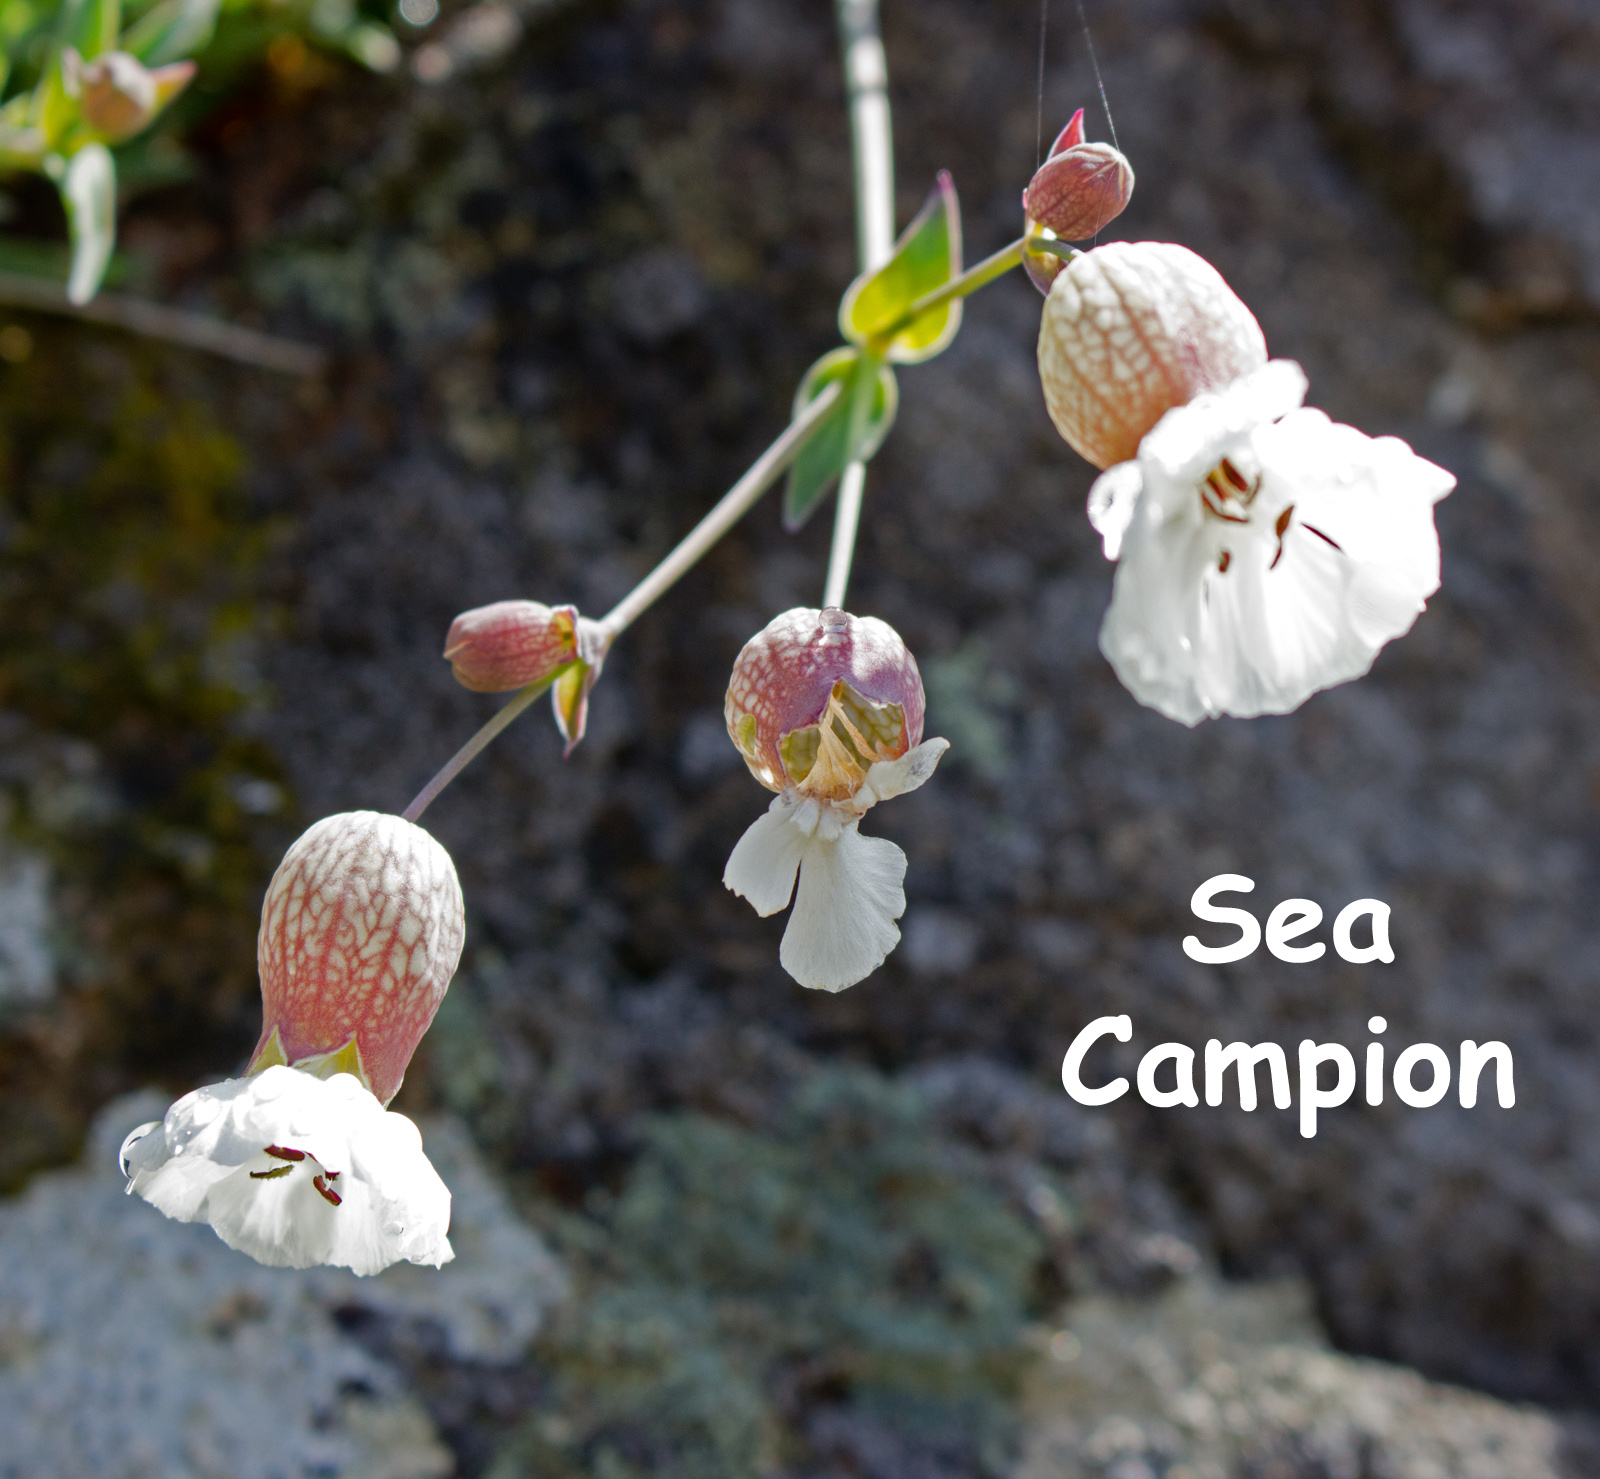 Sea Campion Downing Point text